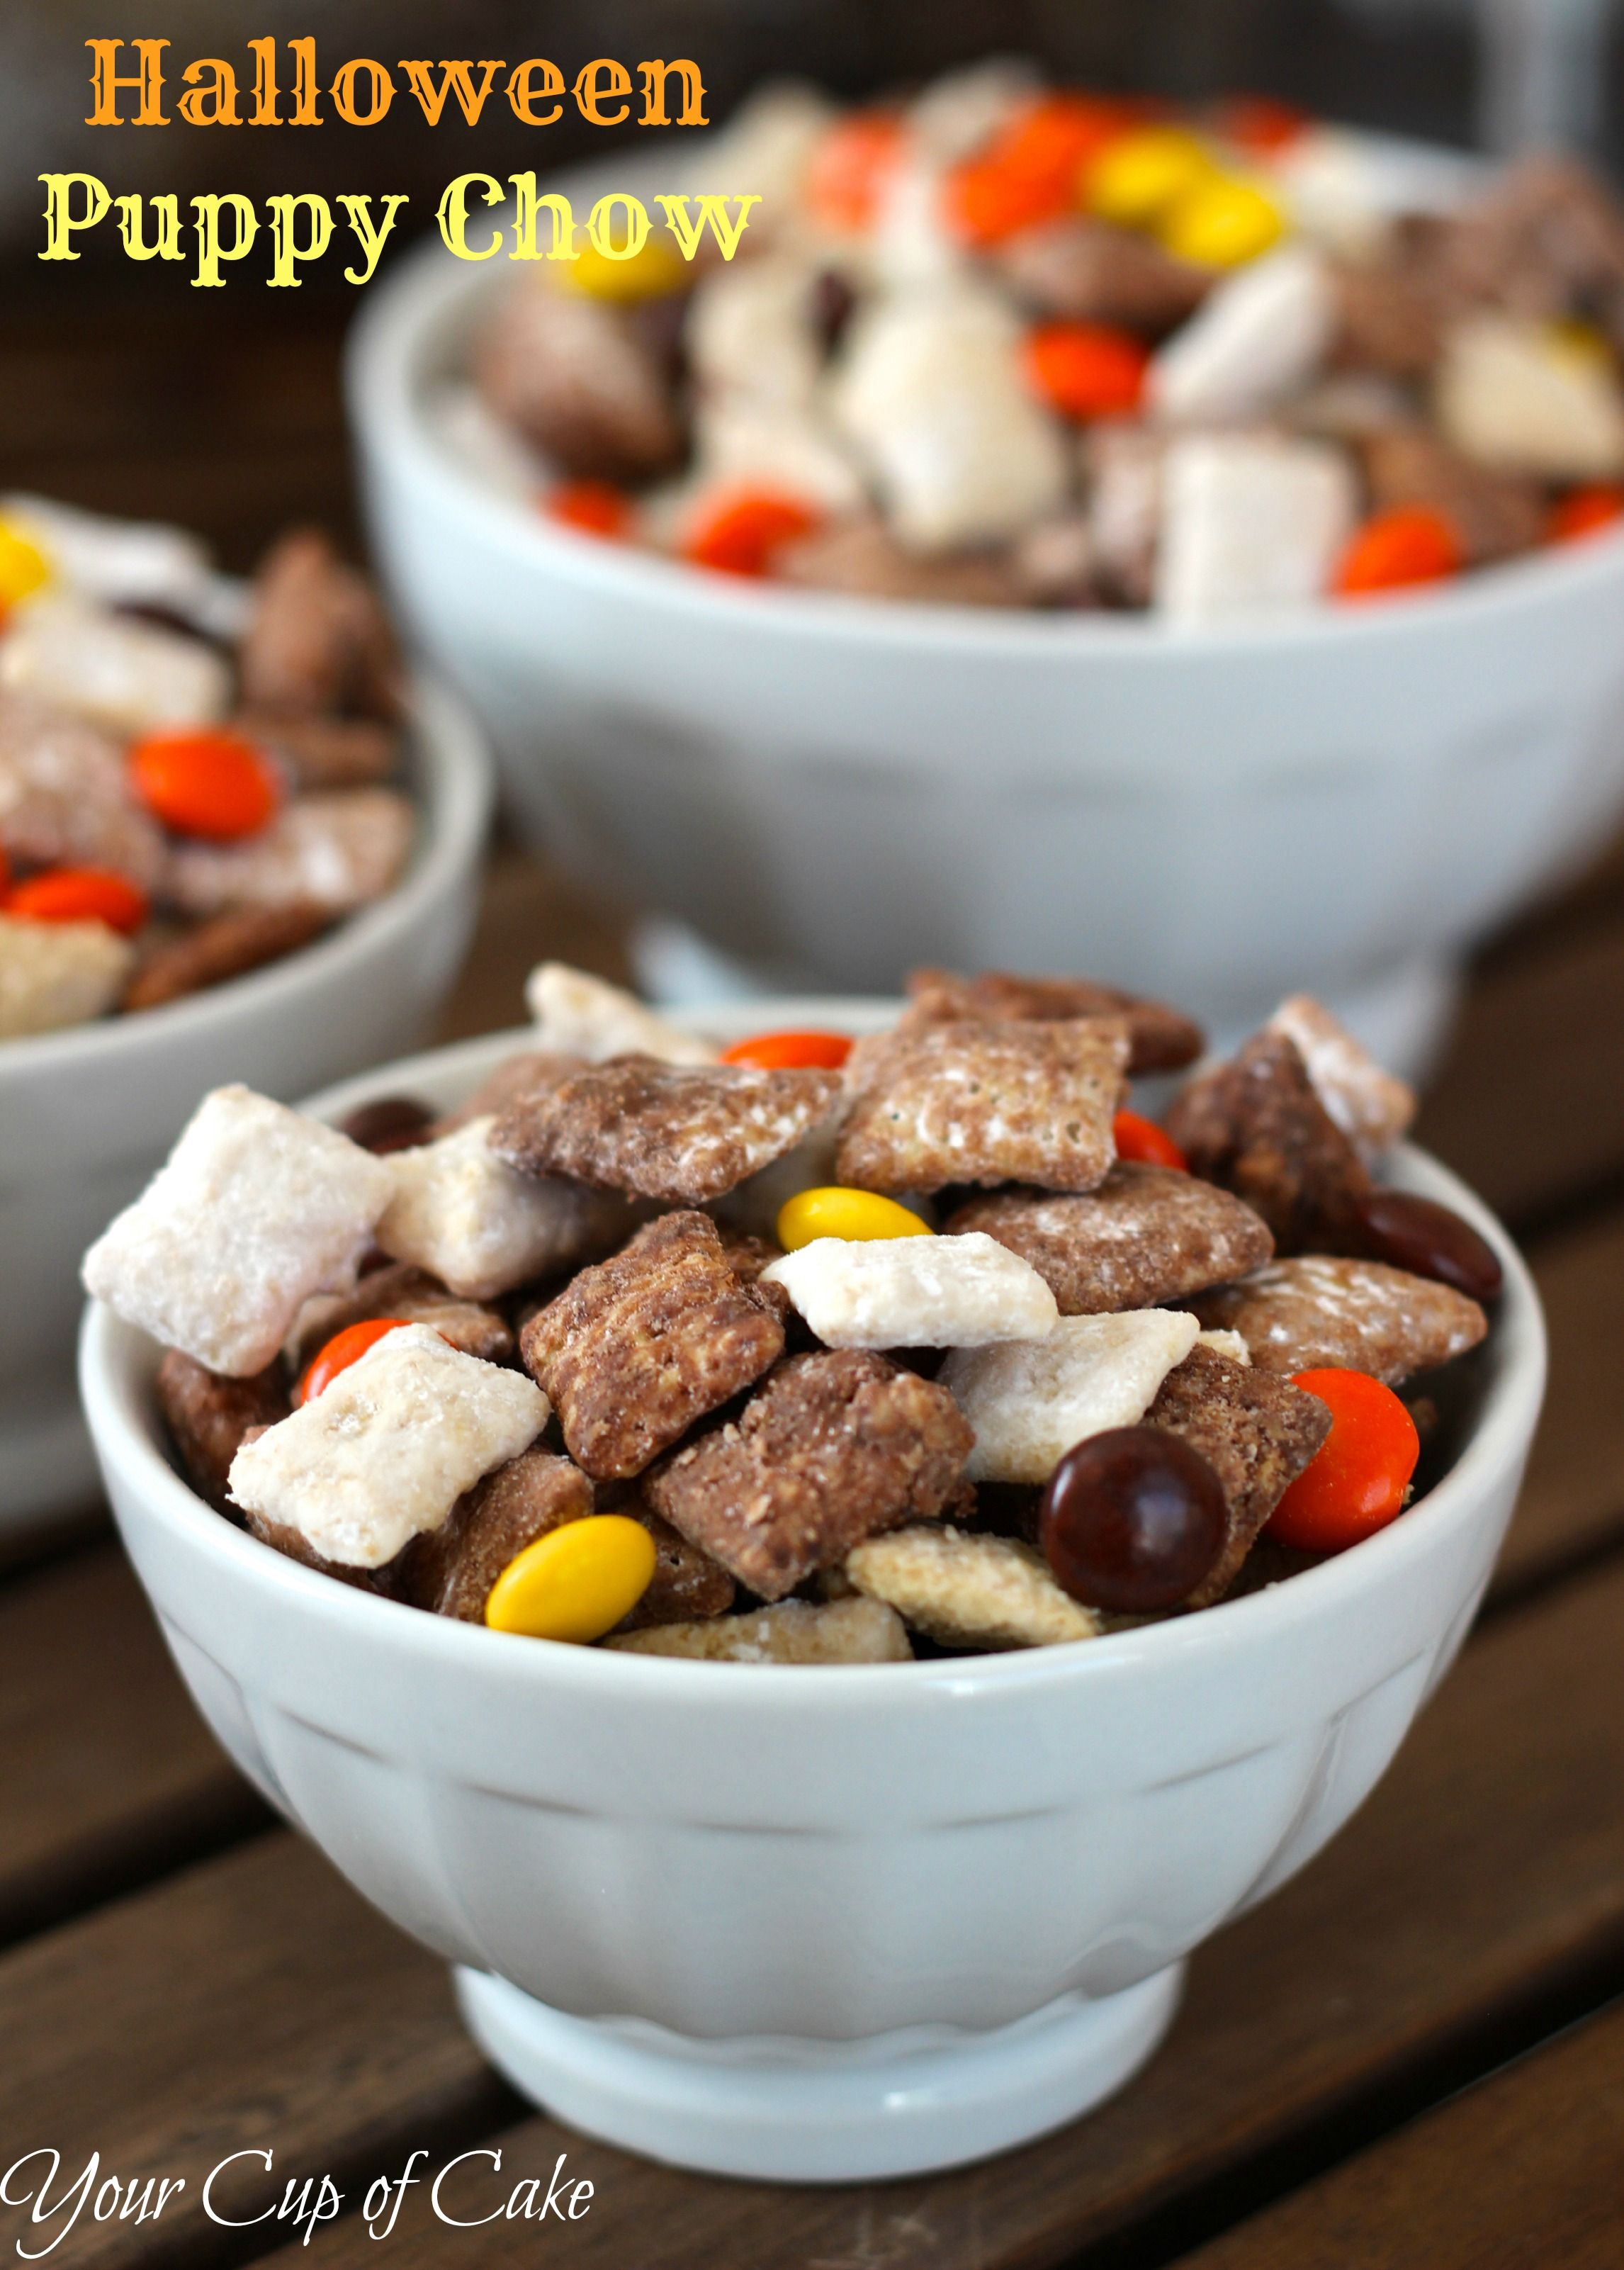 Halloween Puppy Chow Your Cup Of Cake Puppy Chow Recipes Fall Snacks Recipes